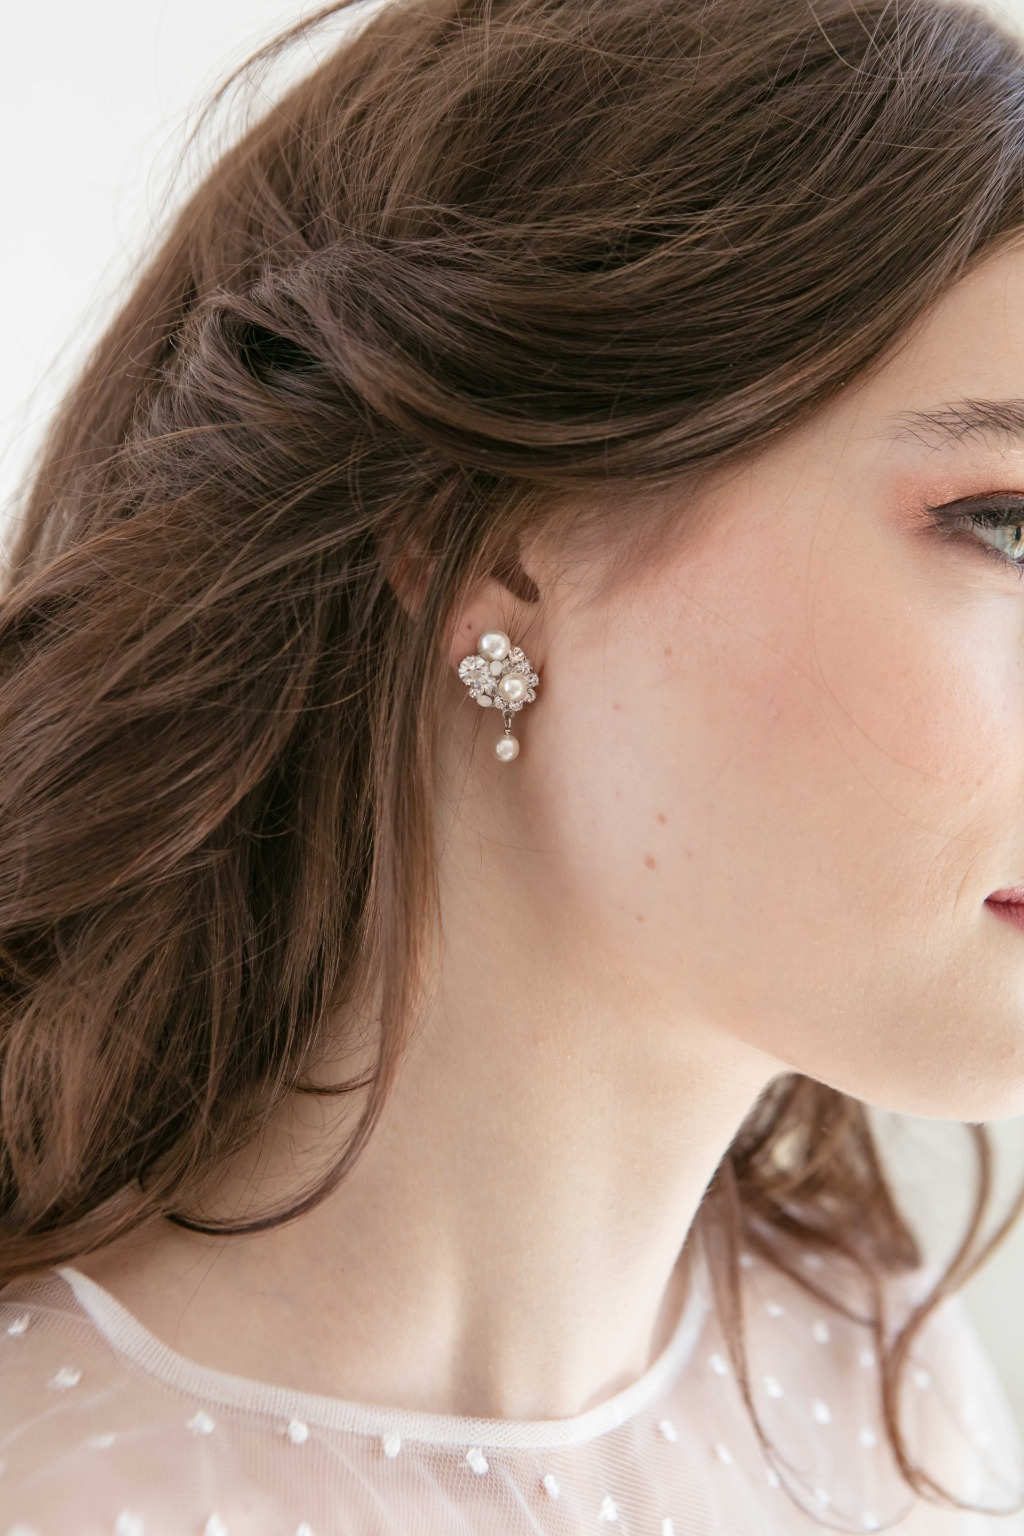 The delicate bridal earring is elegant and classic, which is from the 2020 wedding jewelry collection as well.